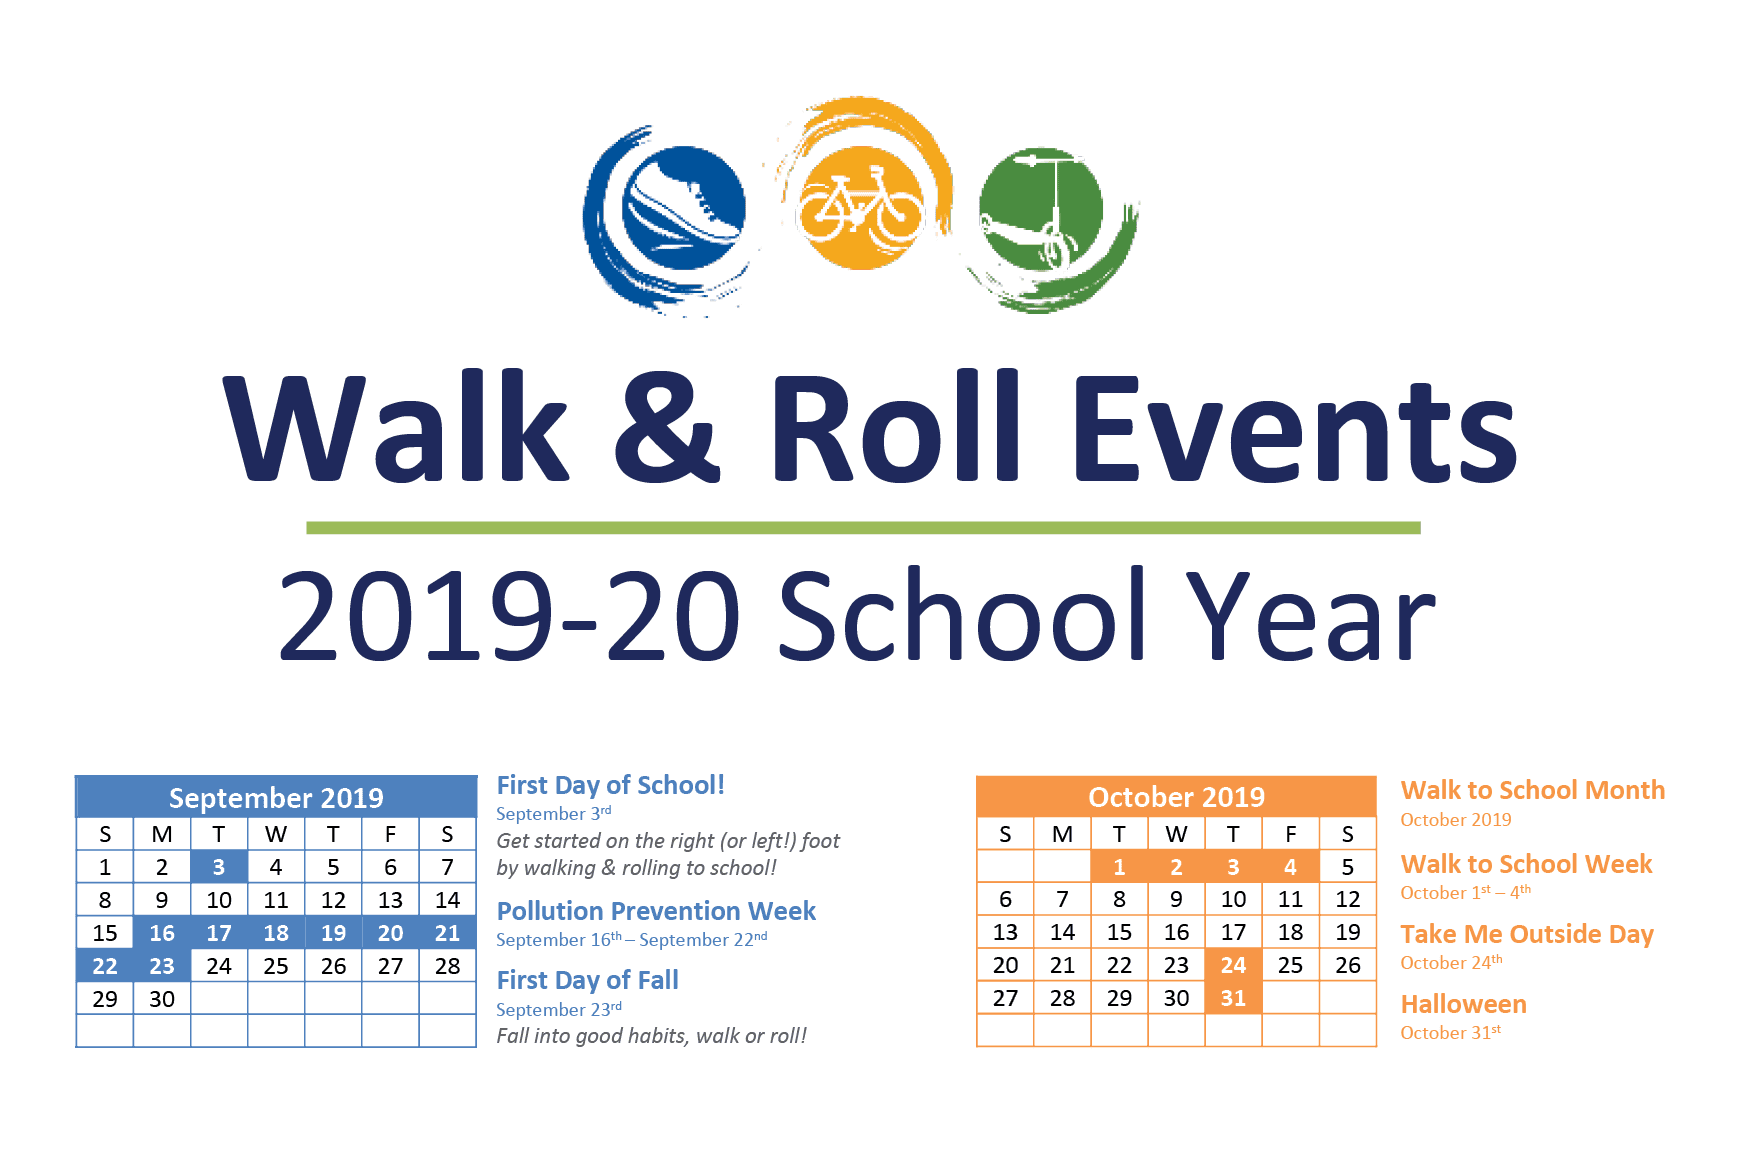 Check out our 2019-20 Walk & Roll Events Calendar!